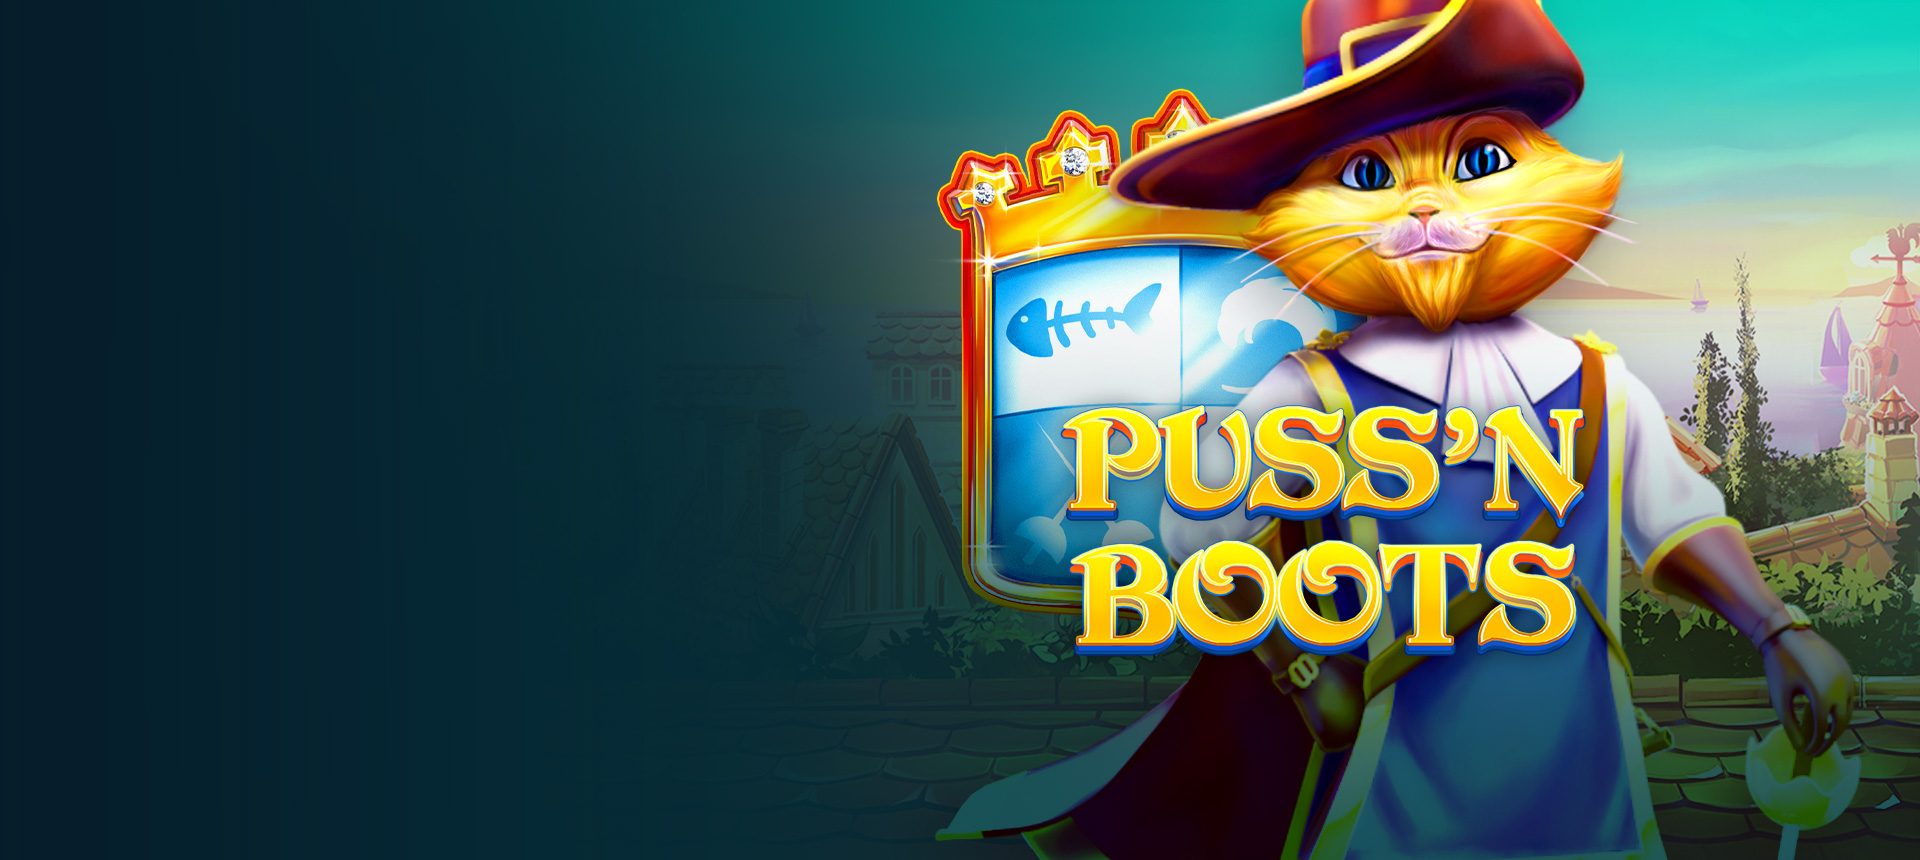 Puts your boots on, it's time to get purr-cious loot!